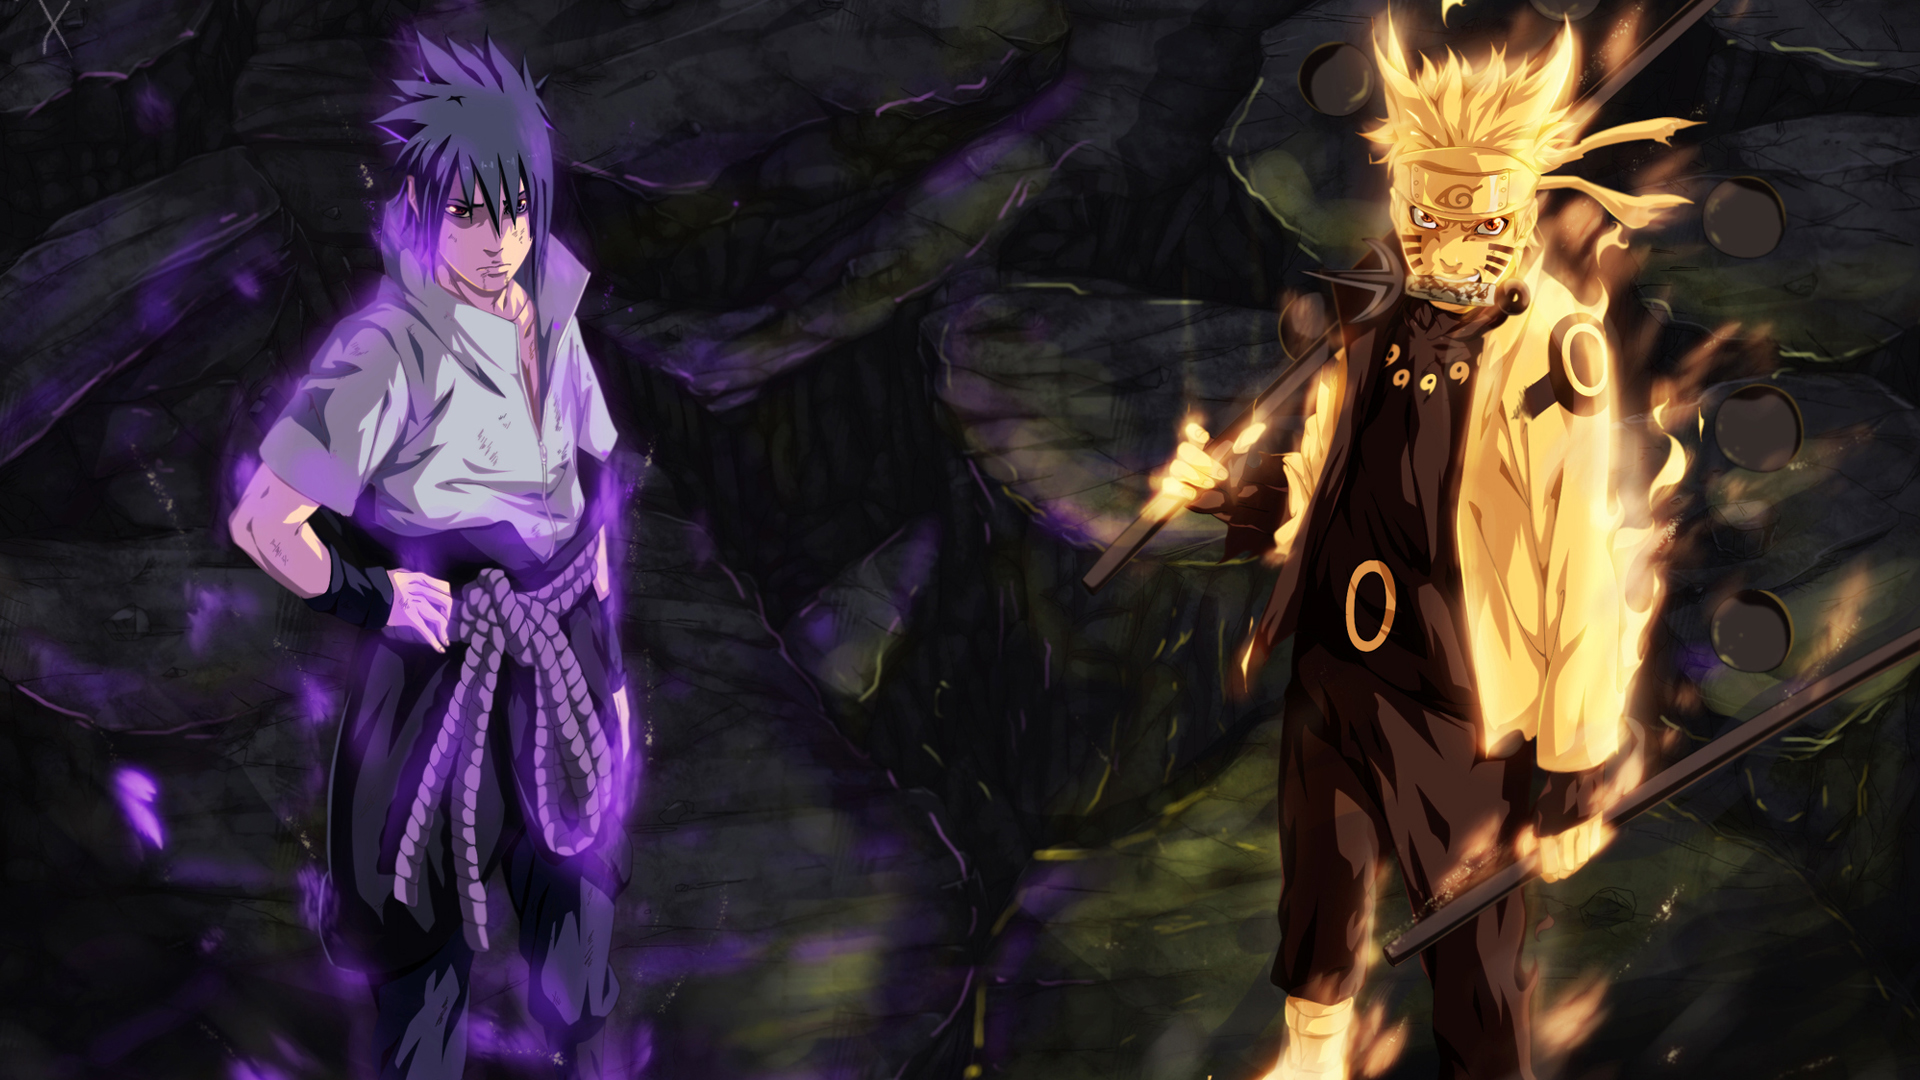 ... and rinnegan eyes and naruto uzumaki sage of six path art anime hd